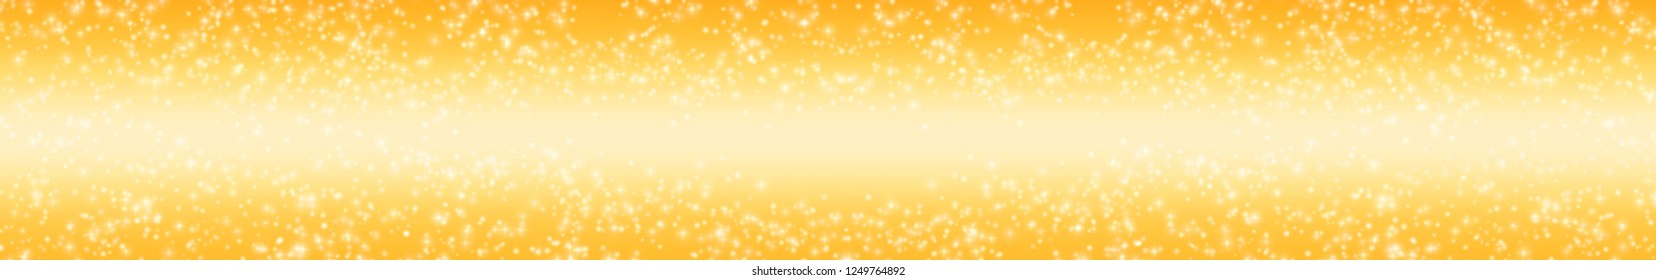 Yellow background with stars